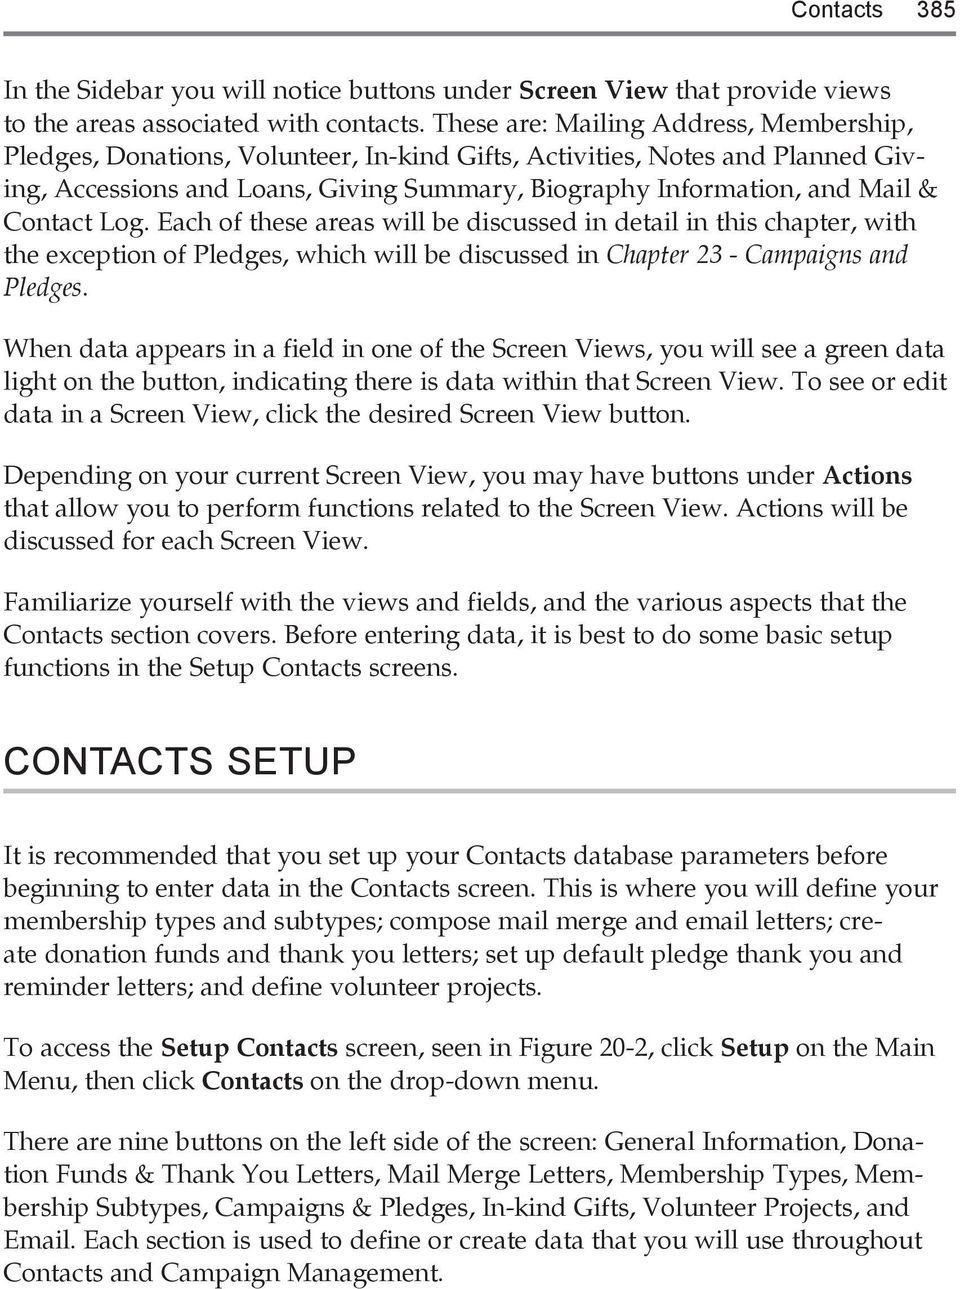 384 PastPerfect Museum Software User s Guide THE CONTACTS SCREEN - PDF